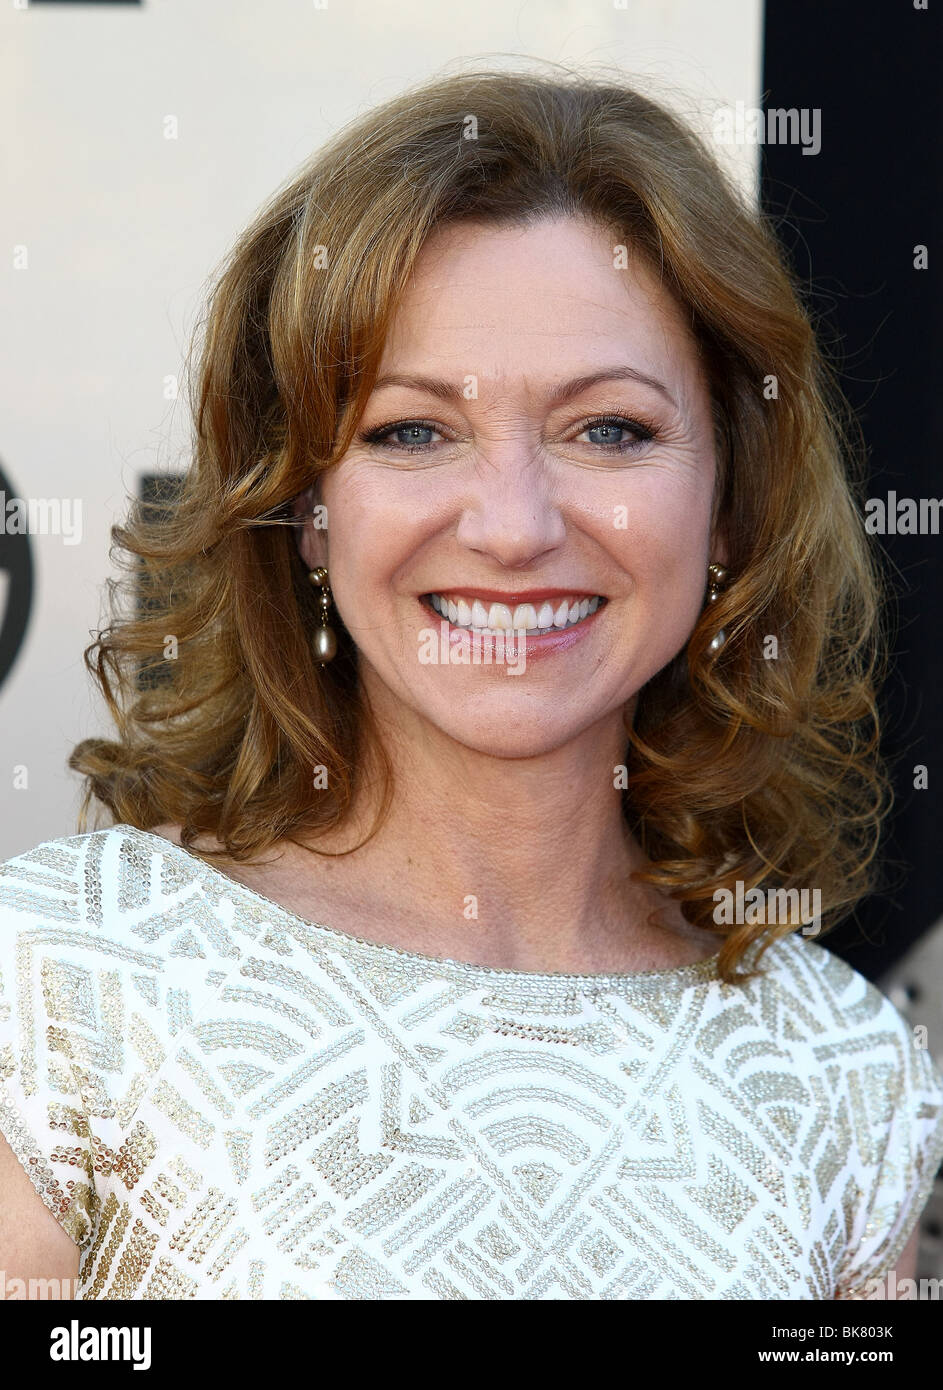 Julie White nude (89 photos), Sexy, Paparazzi, Feet, cleavage 2006